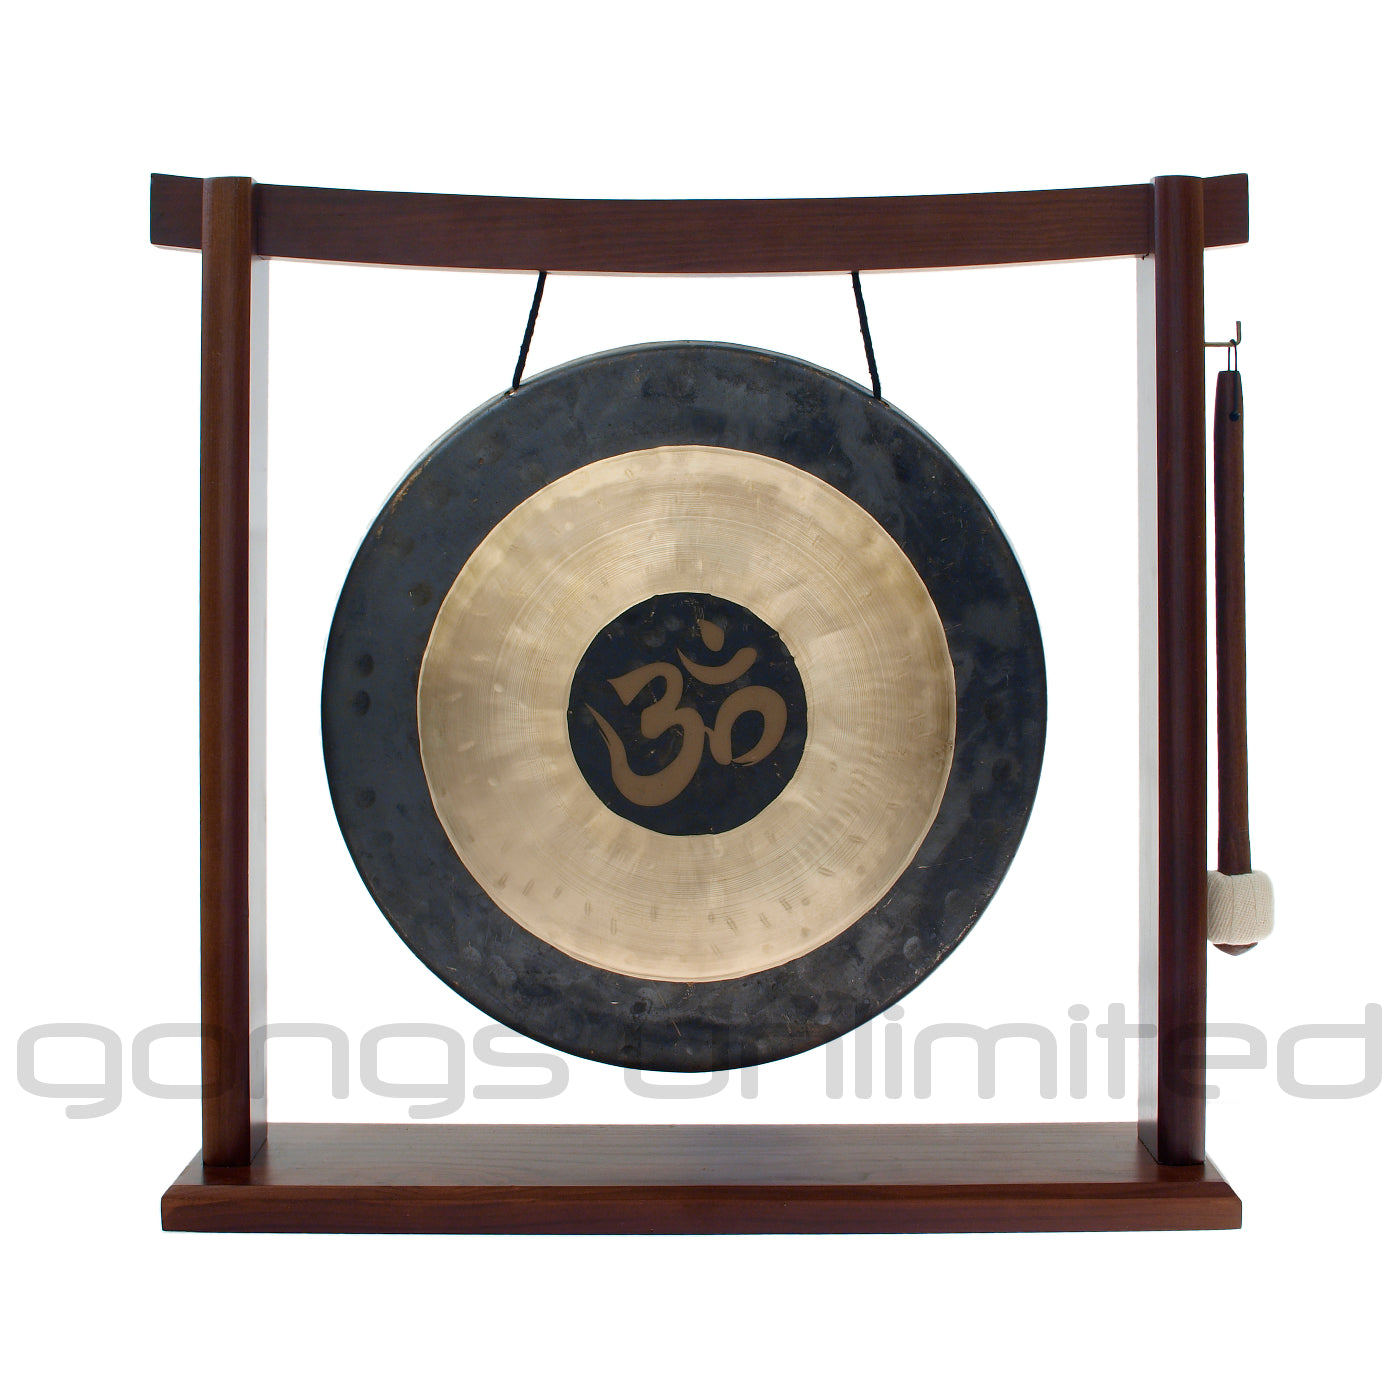 Om gongs on stands gongs unlimited om gongs on stands biocorpaavc